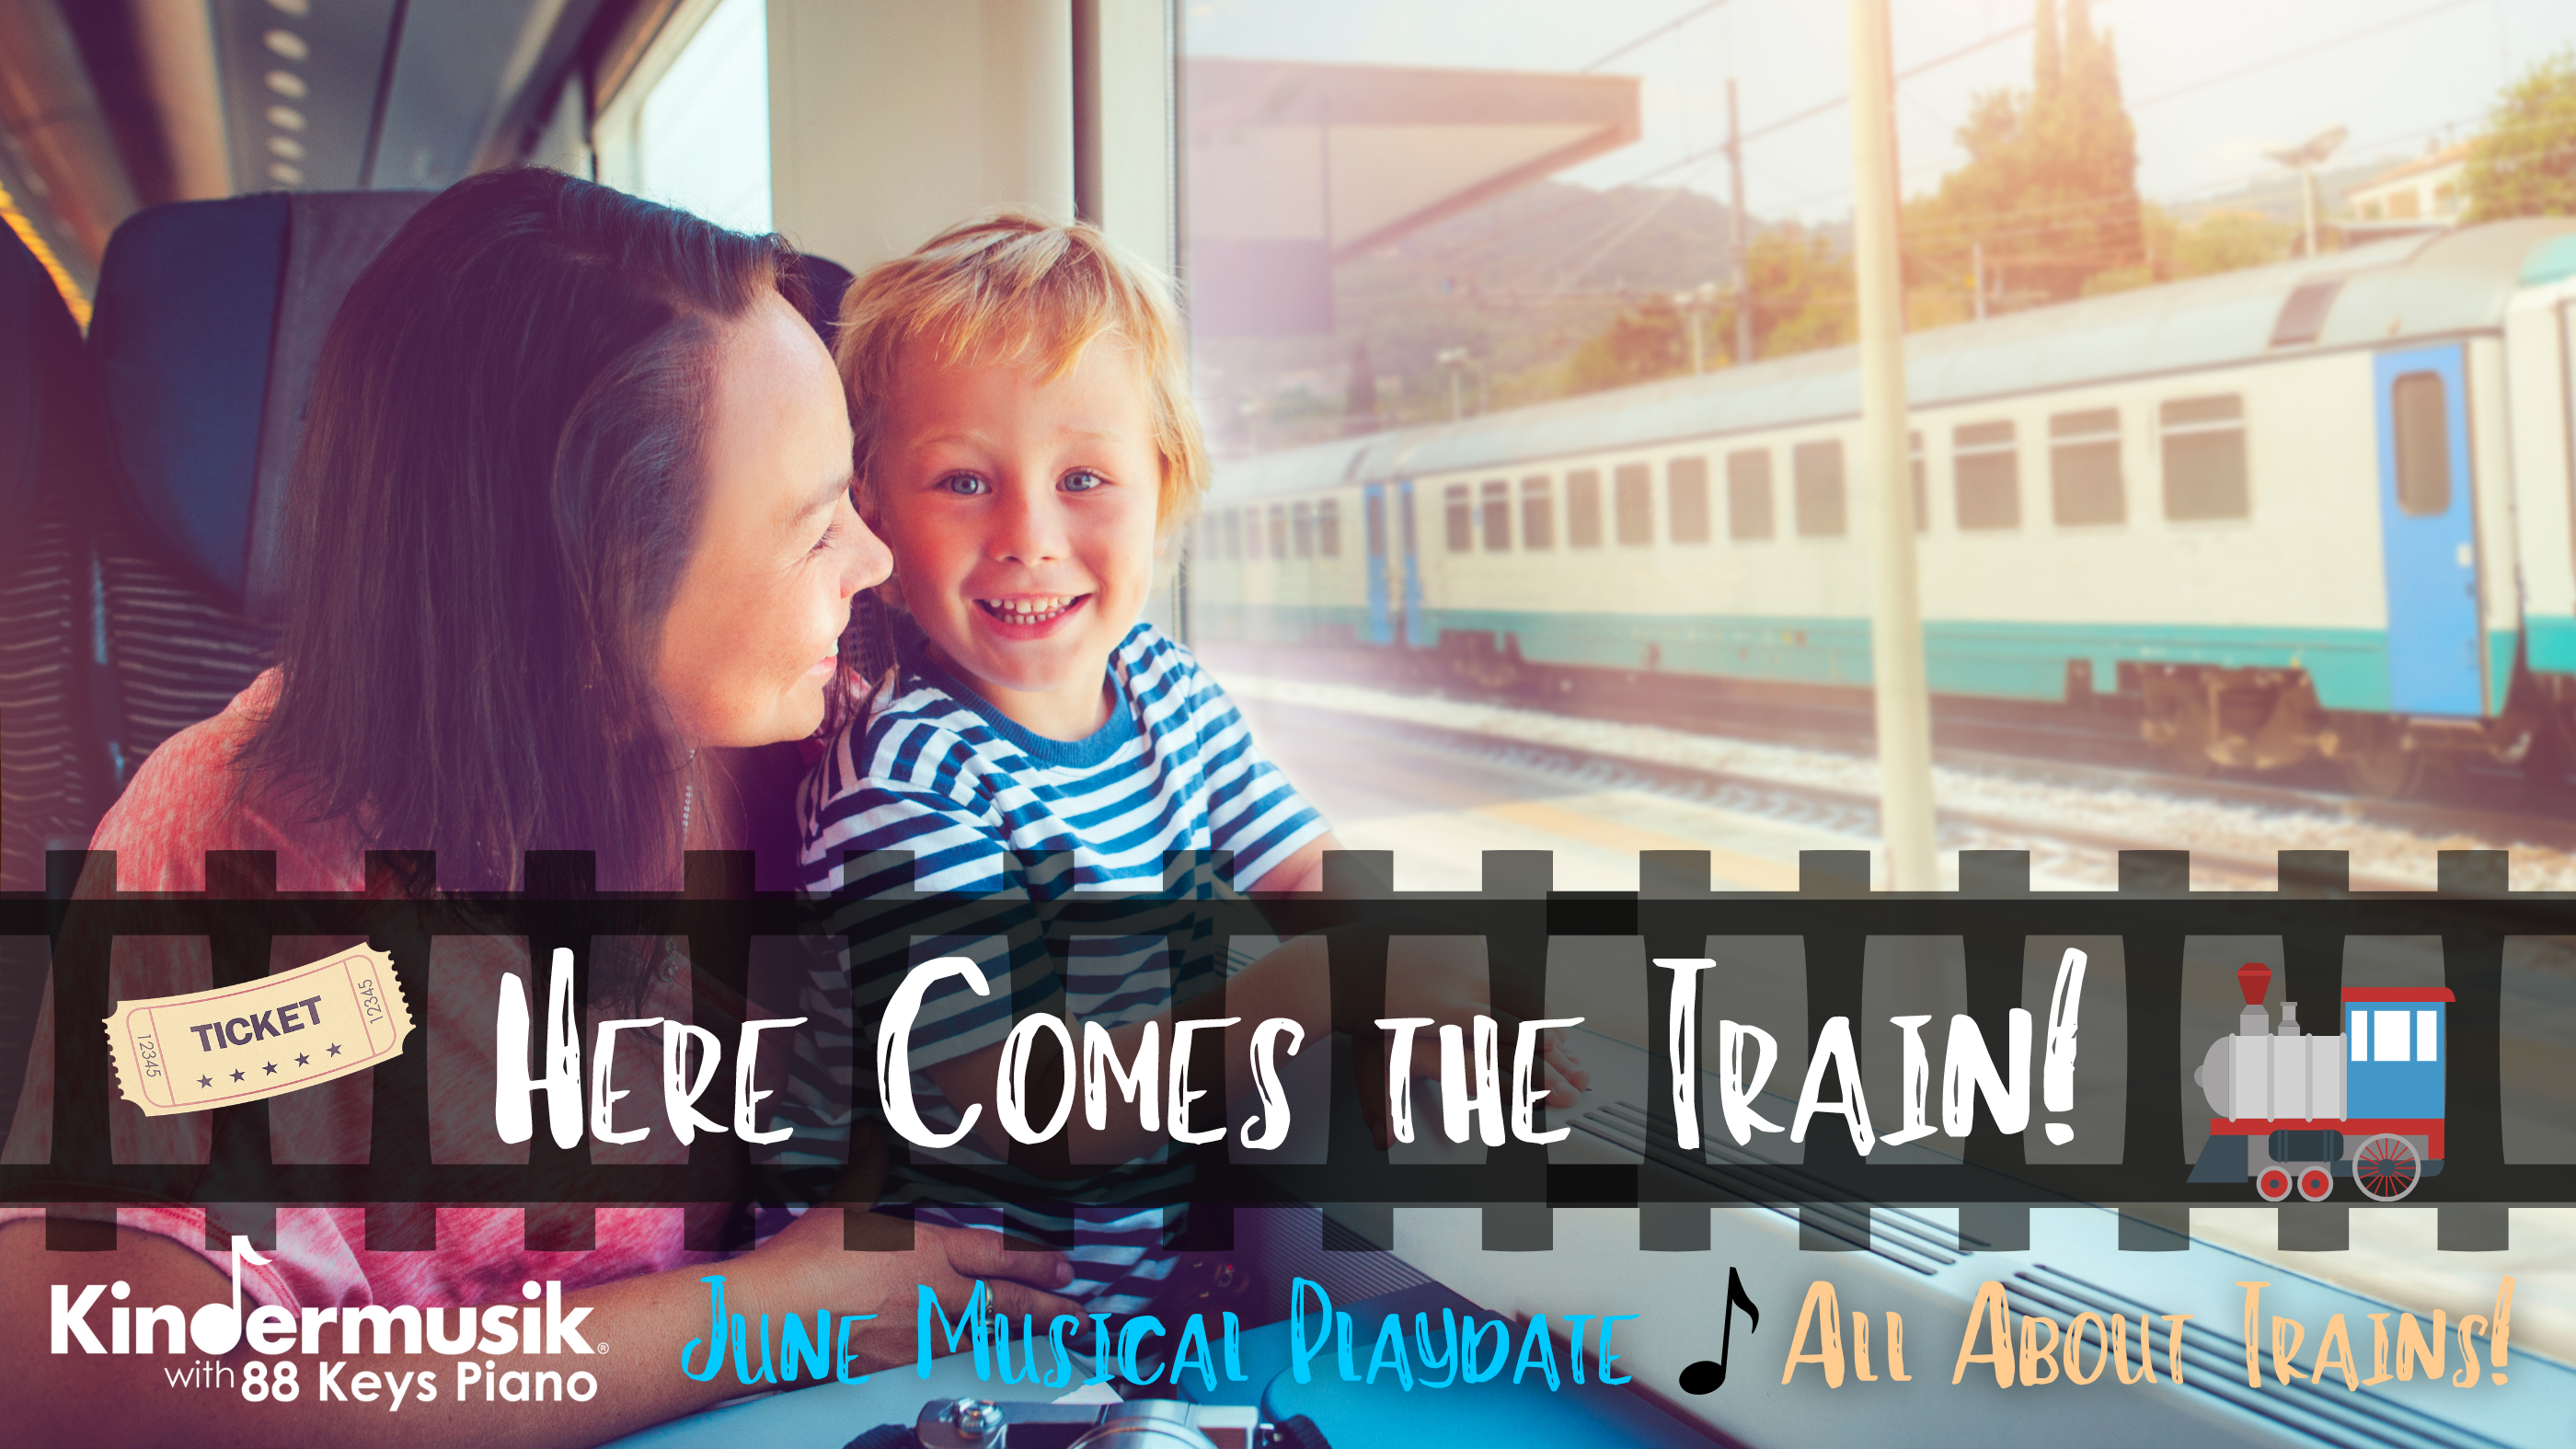 June Musical Playdate: Here Comes the Train!